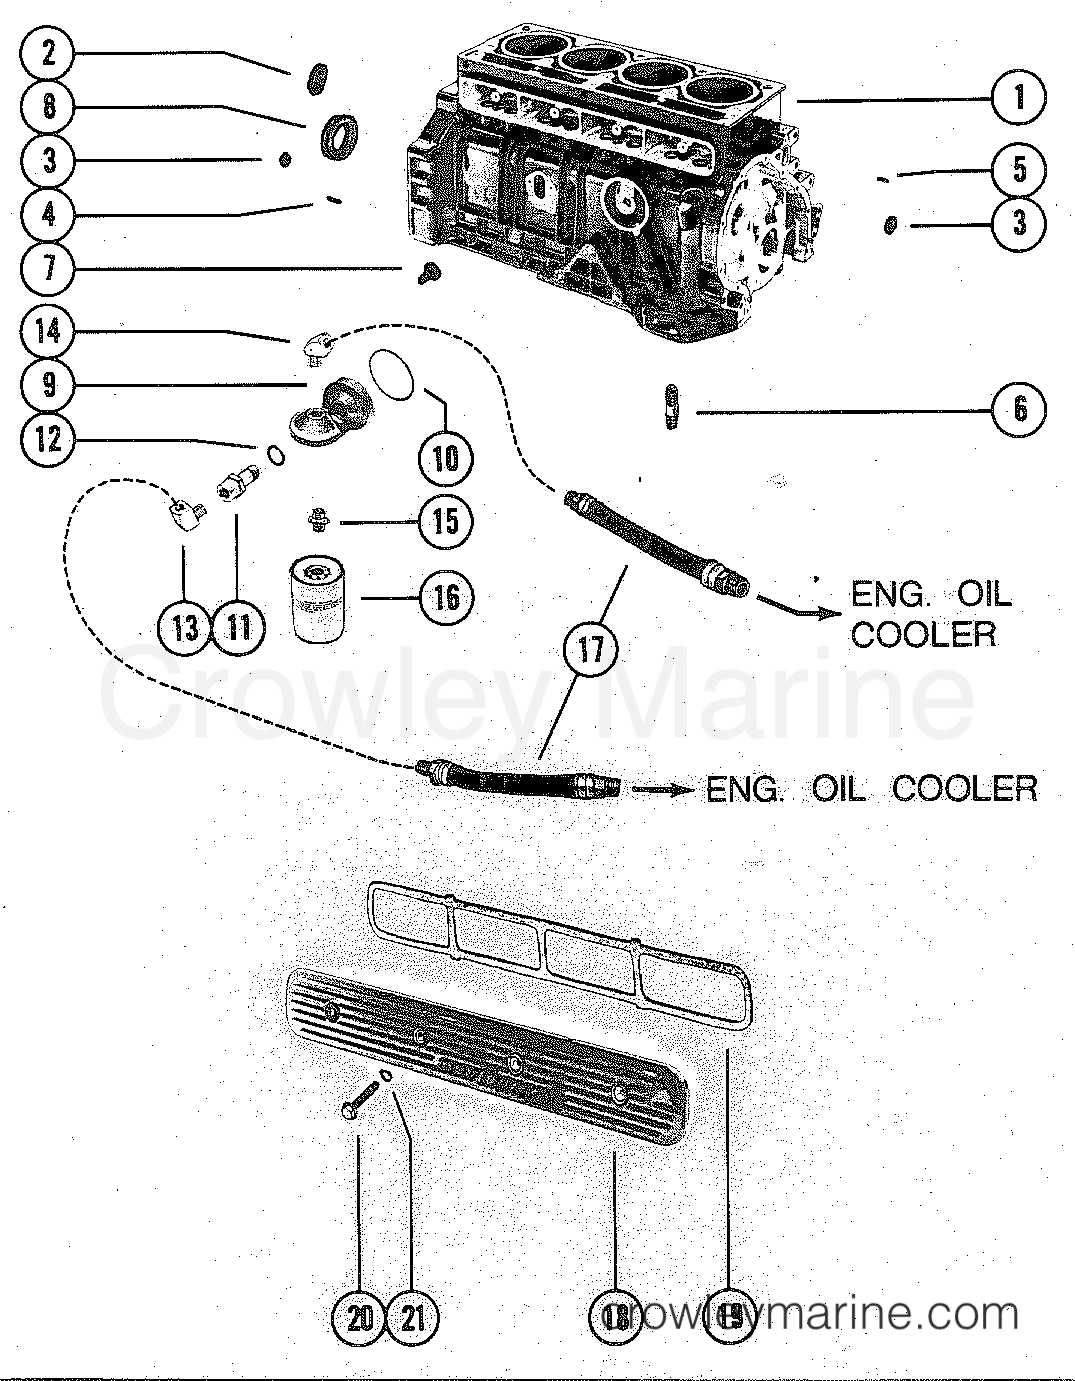 Cylinder Block Assembly And Oil Filter Adaptor